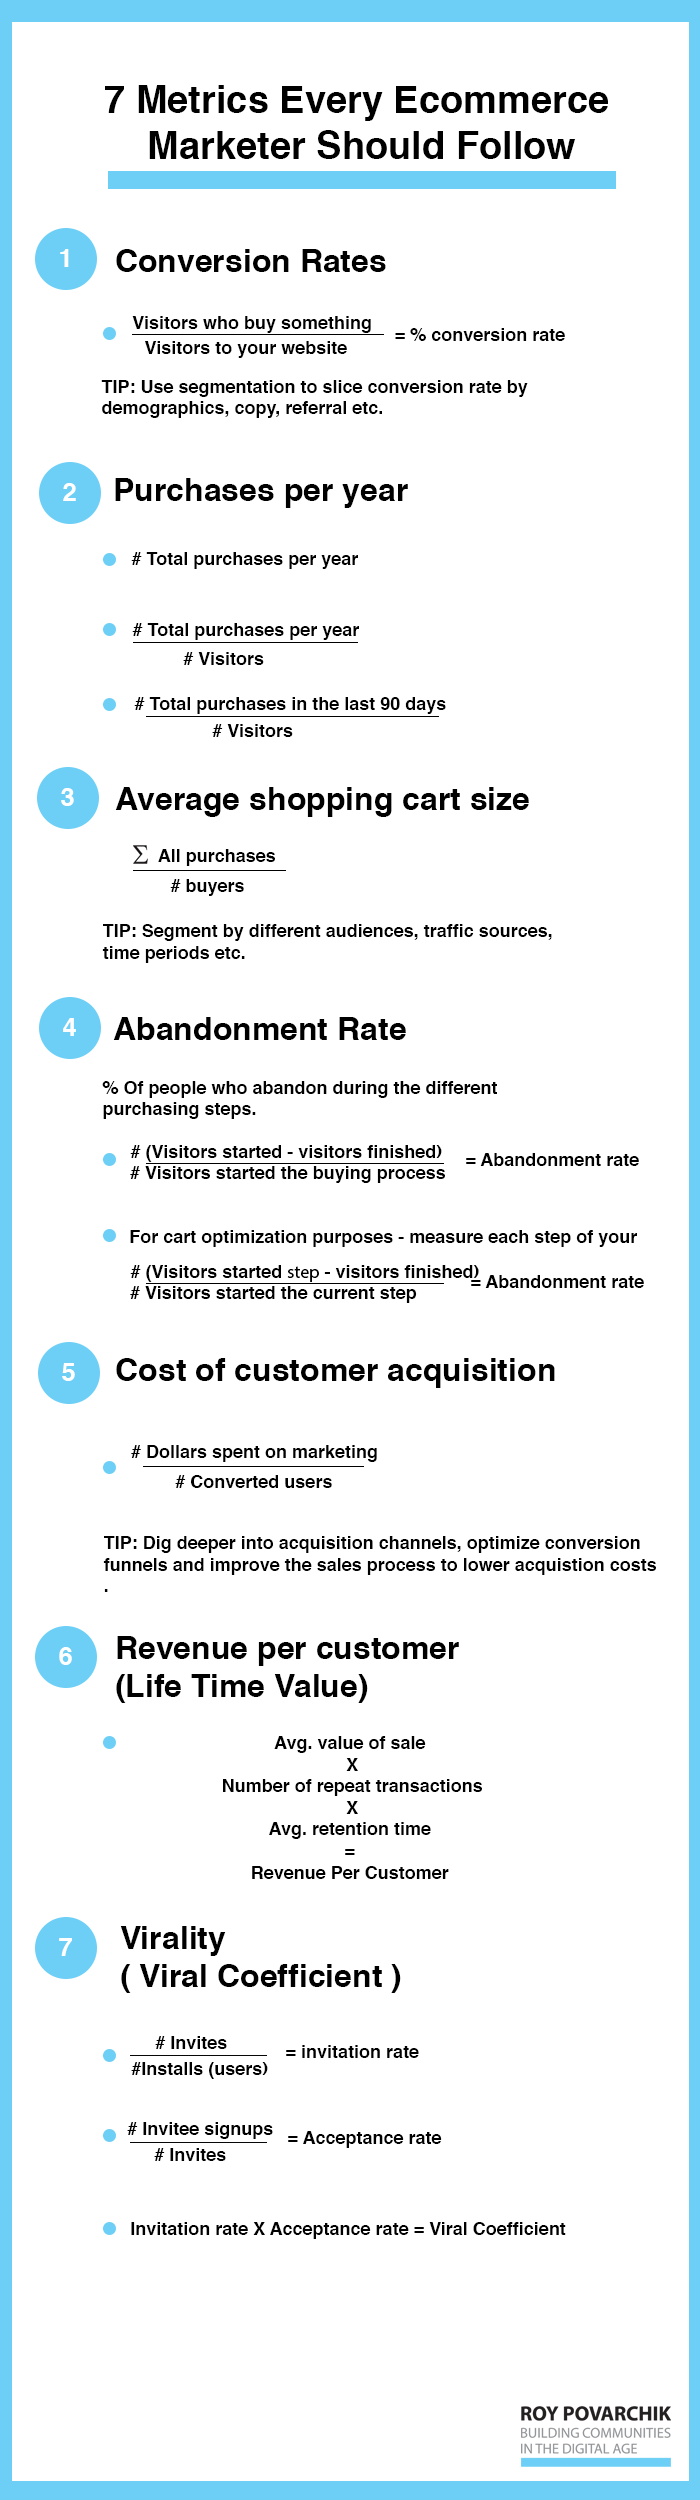 Metrics Every Ecommerce Marketer Should Follow To Achieve Growth